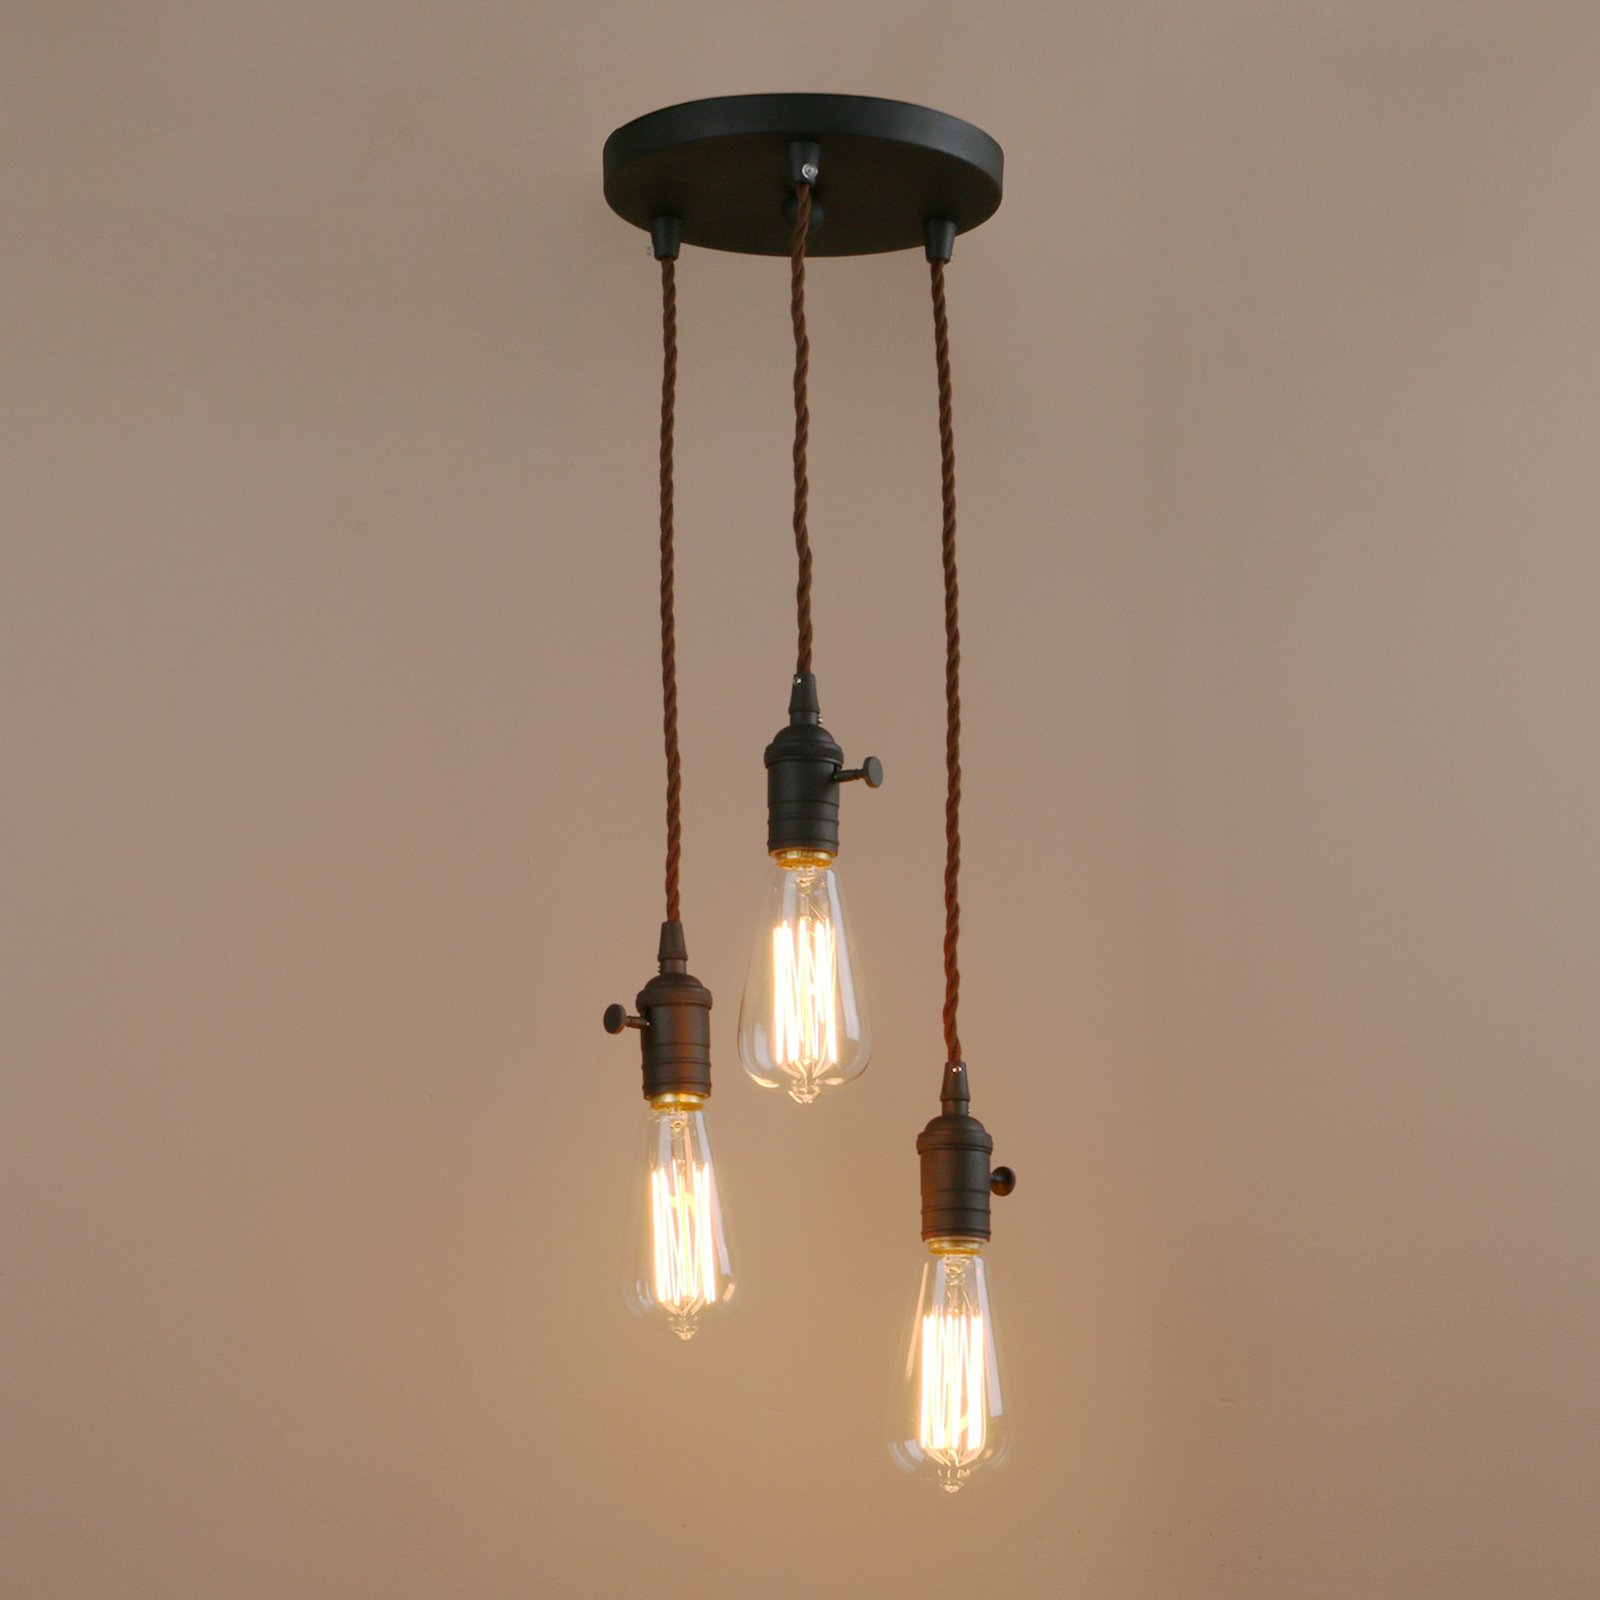 Get Quotations Pathson 3 Lights Pendant Light Fixtures With Vintage Style Simple Home Ceiling Fixture